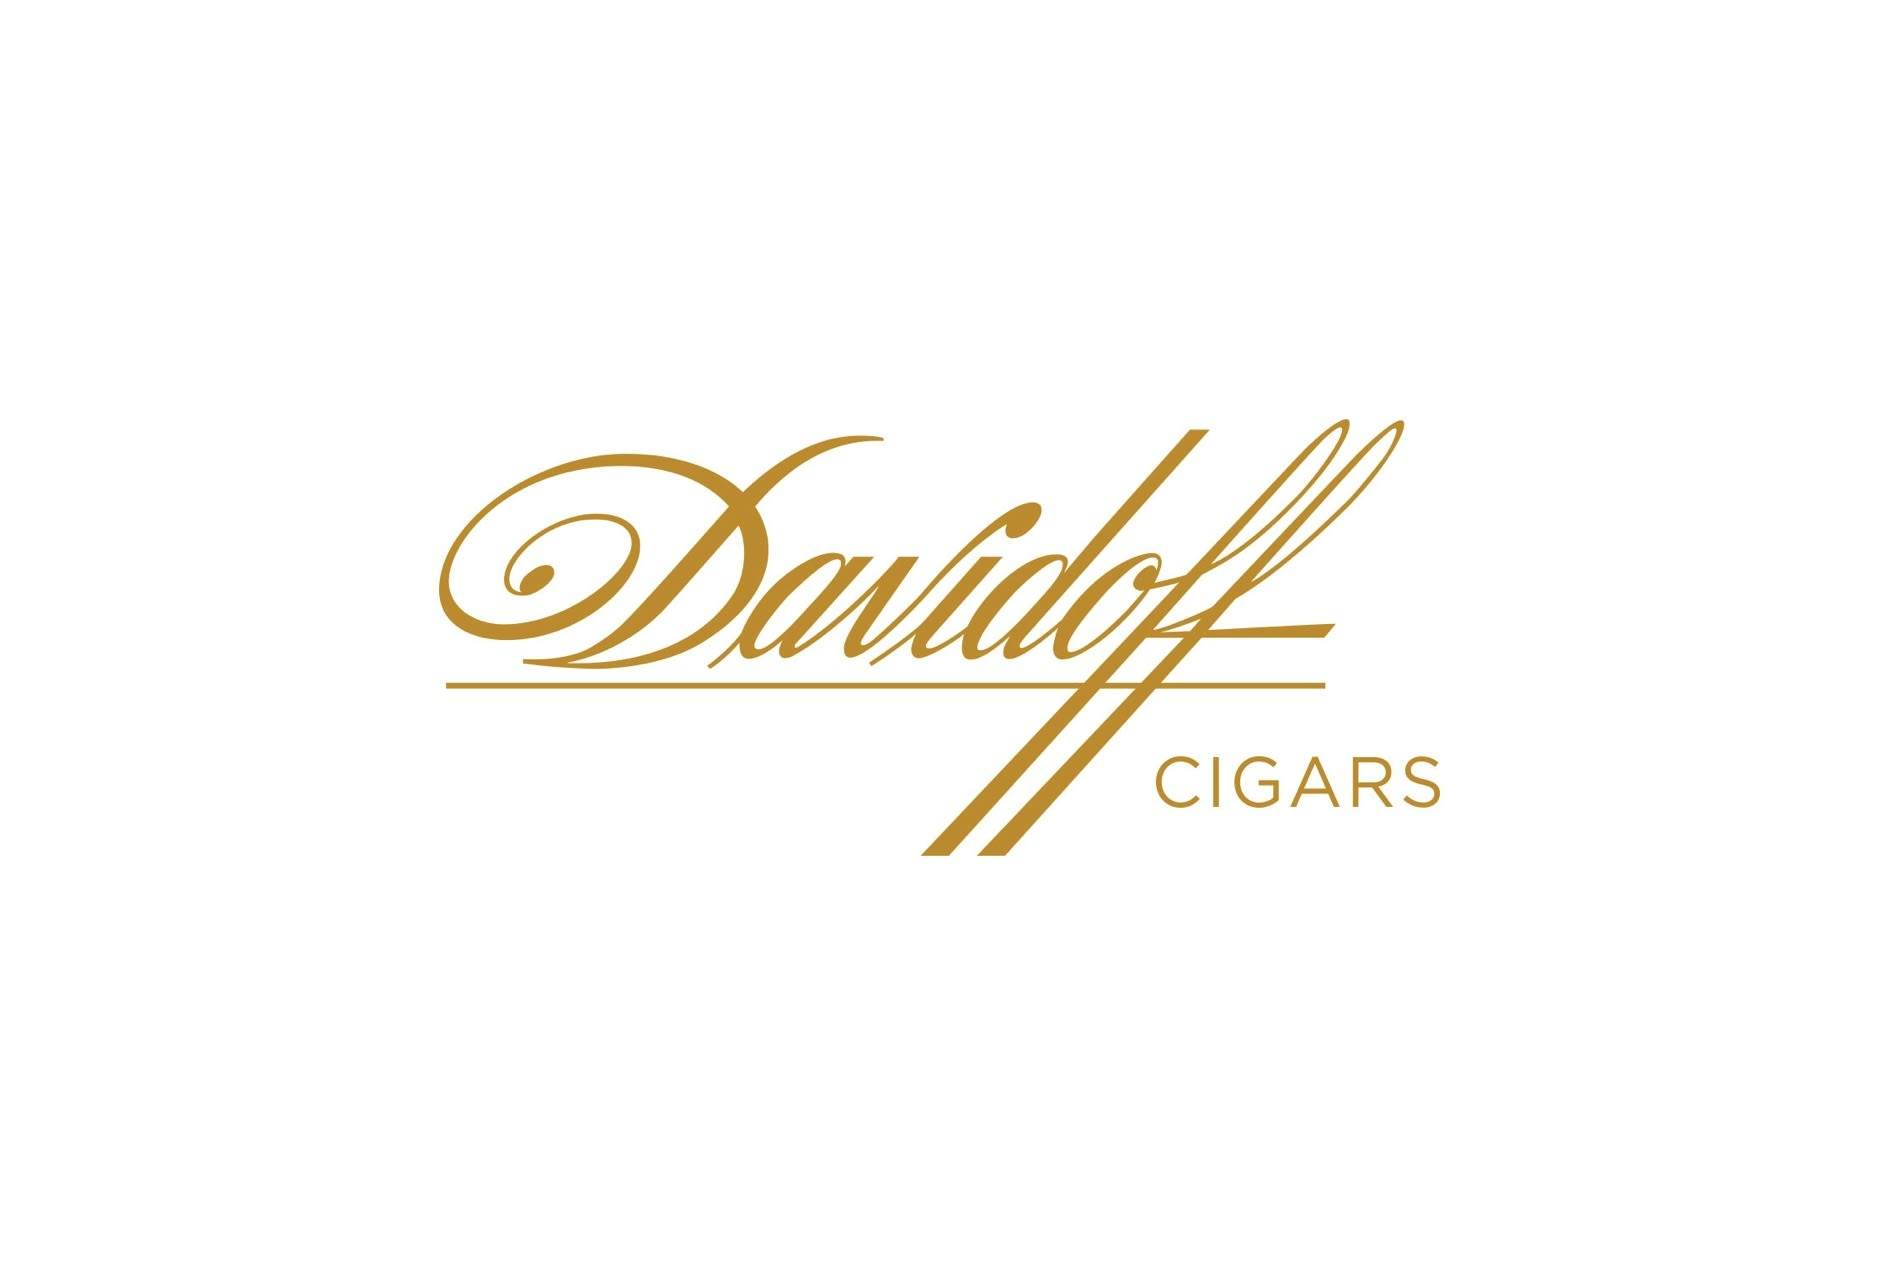 Davidoff Piquant Arrives in Stores Featured Image